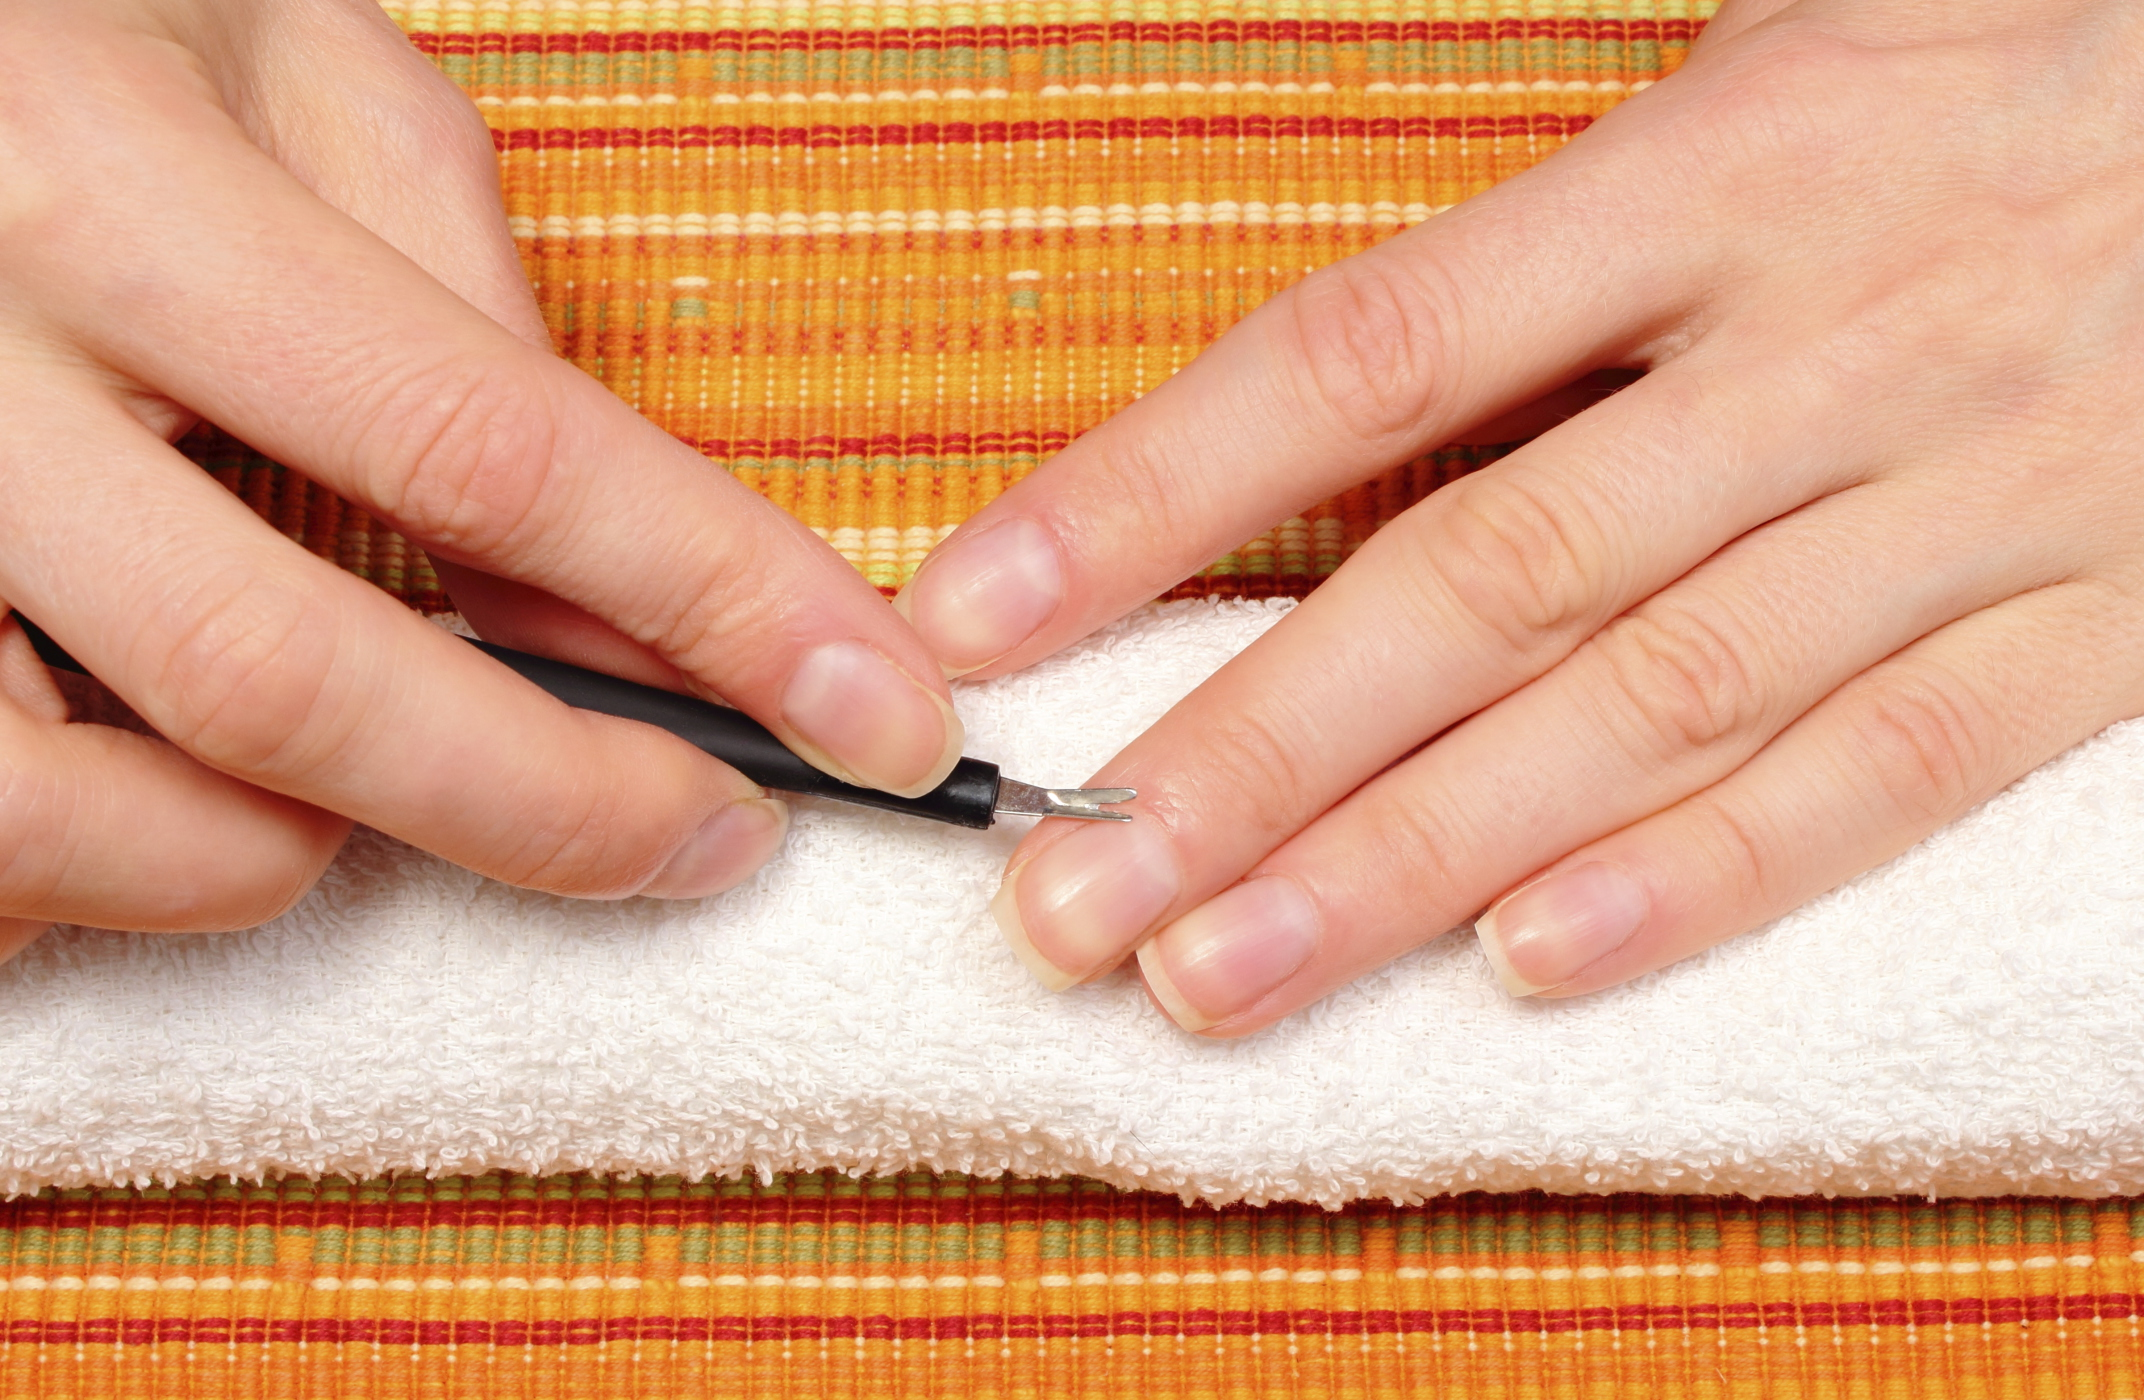 How to Stop Biting Your Cuticles | LIVESTRONG.COM